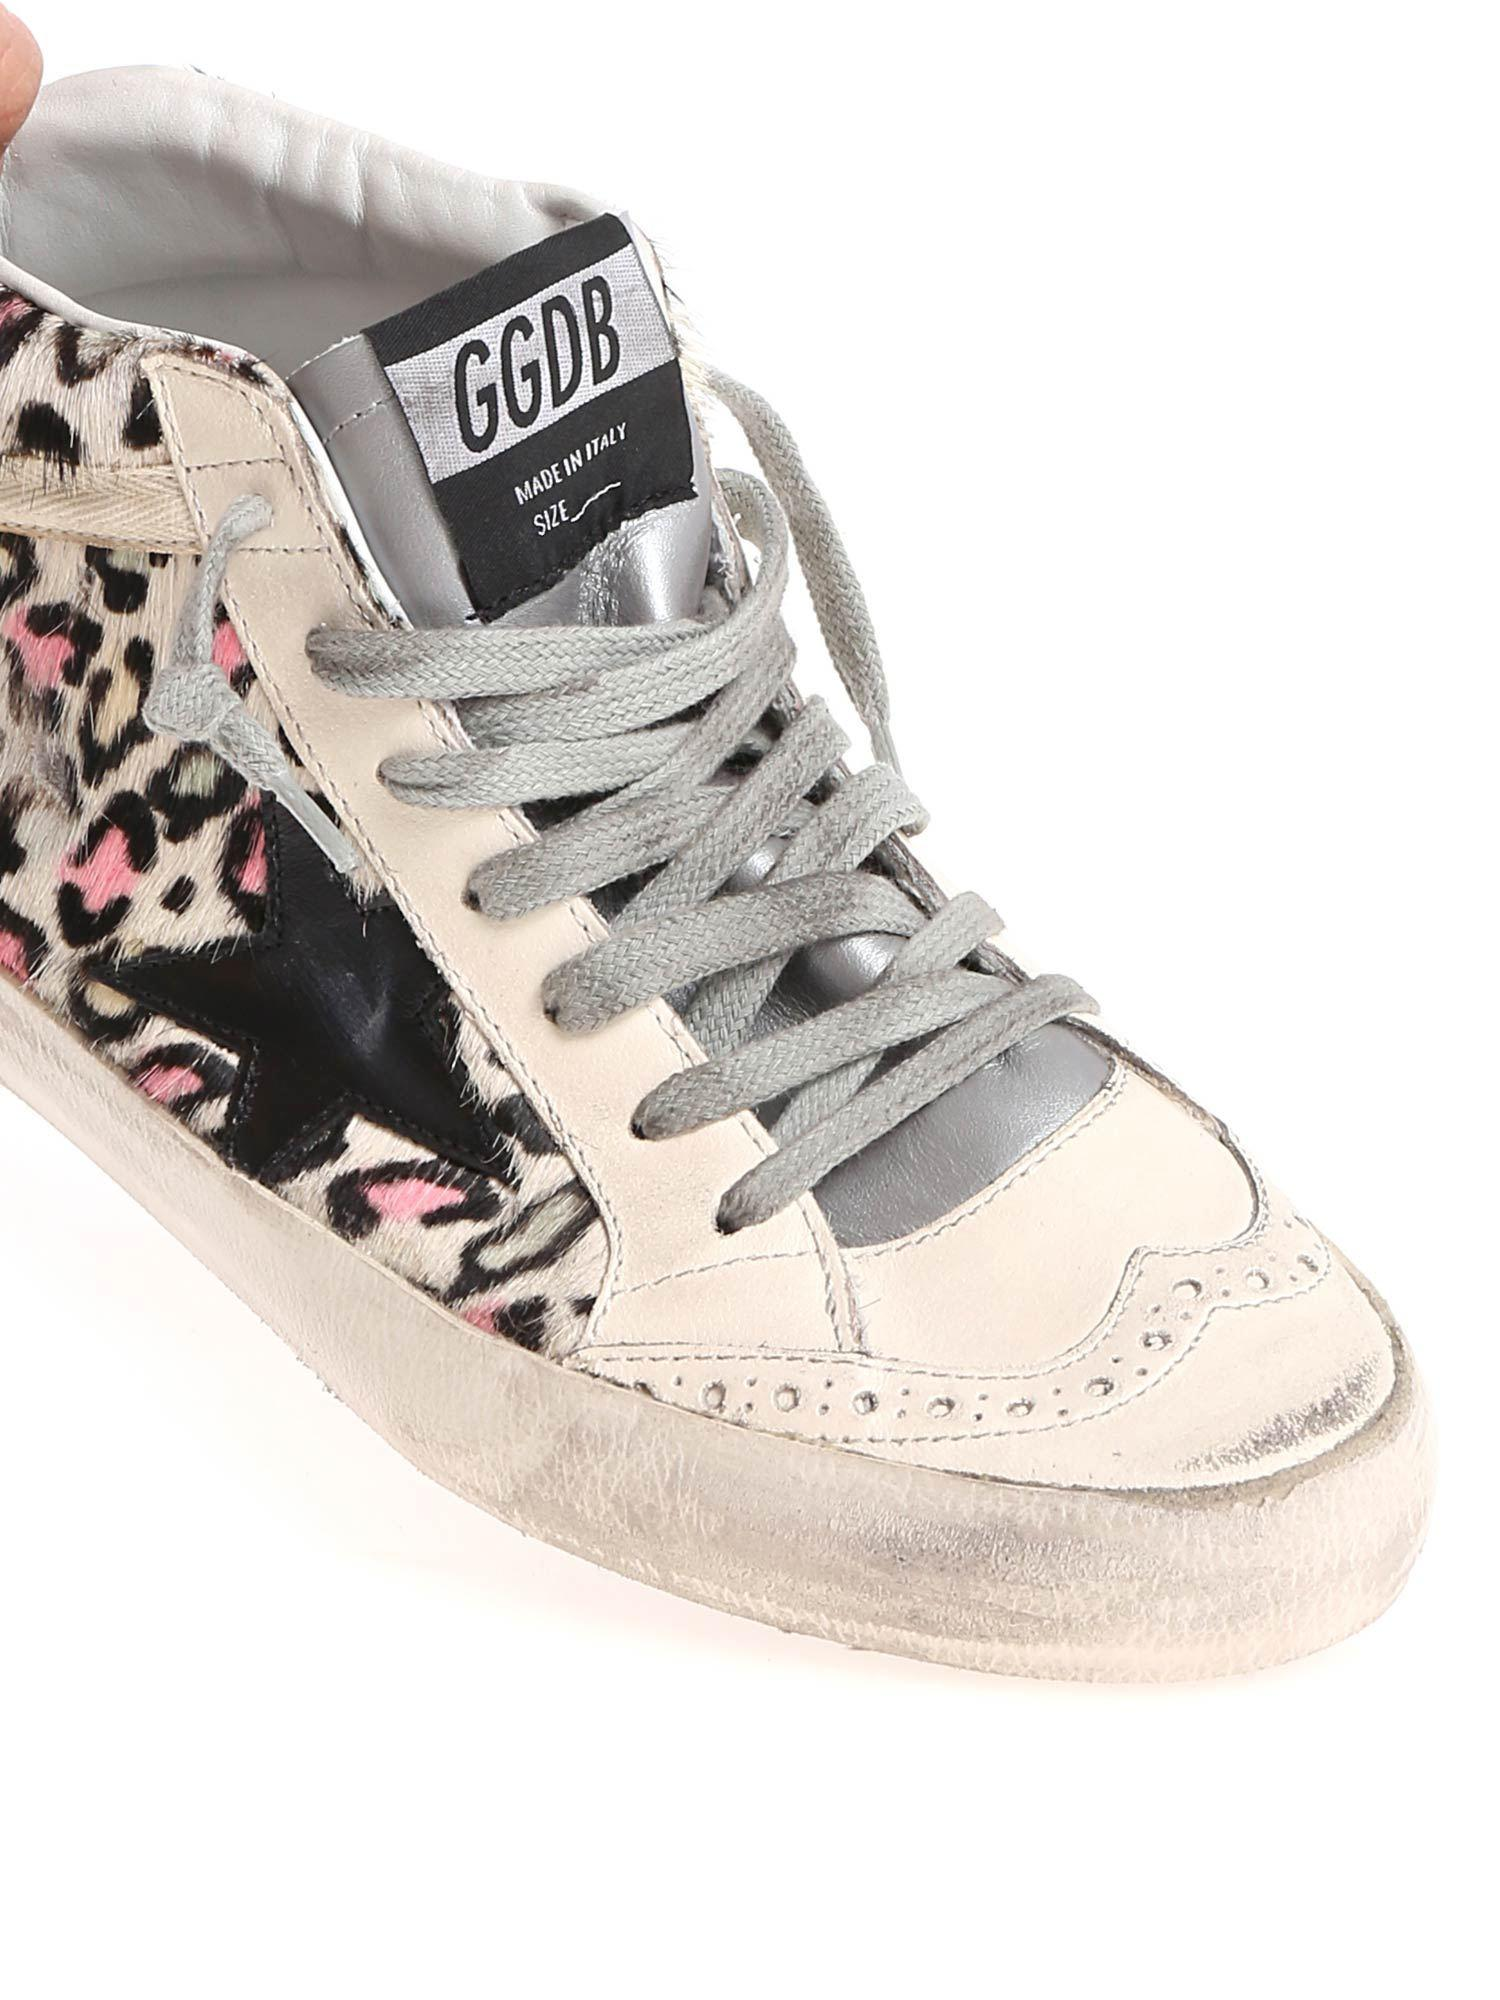 Golden Goose Deluxe Brand Leather Animal Printed Mid Star Sneakers